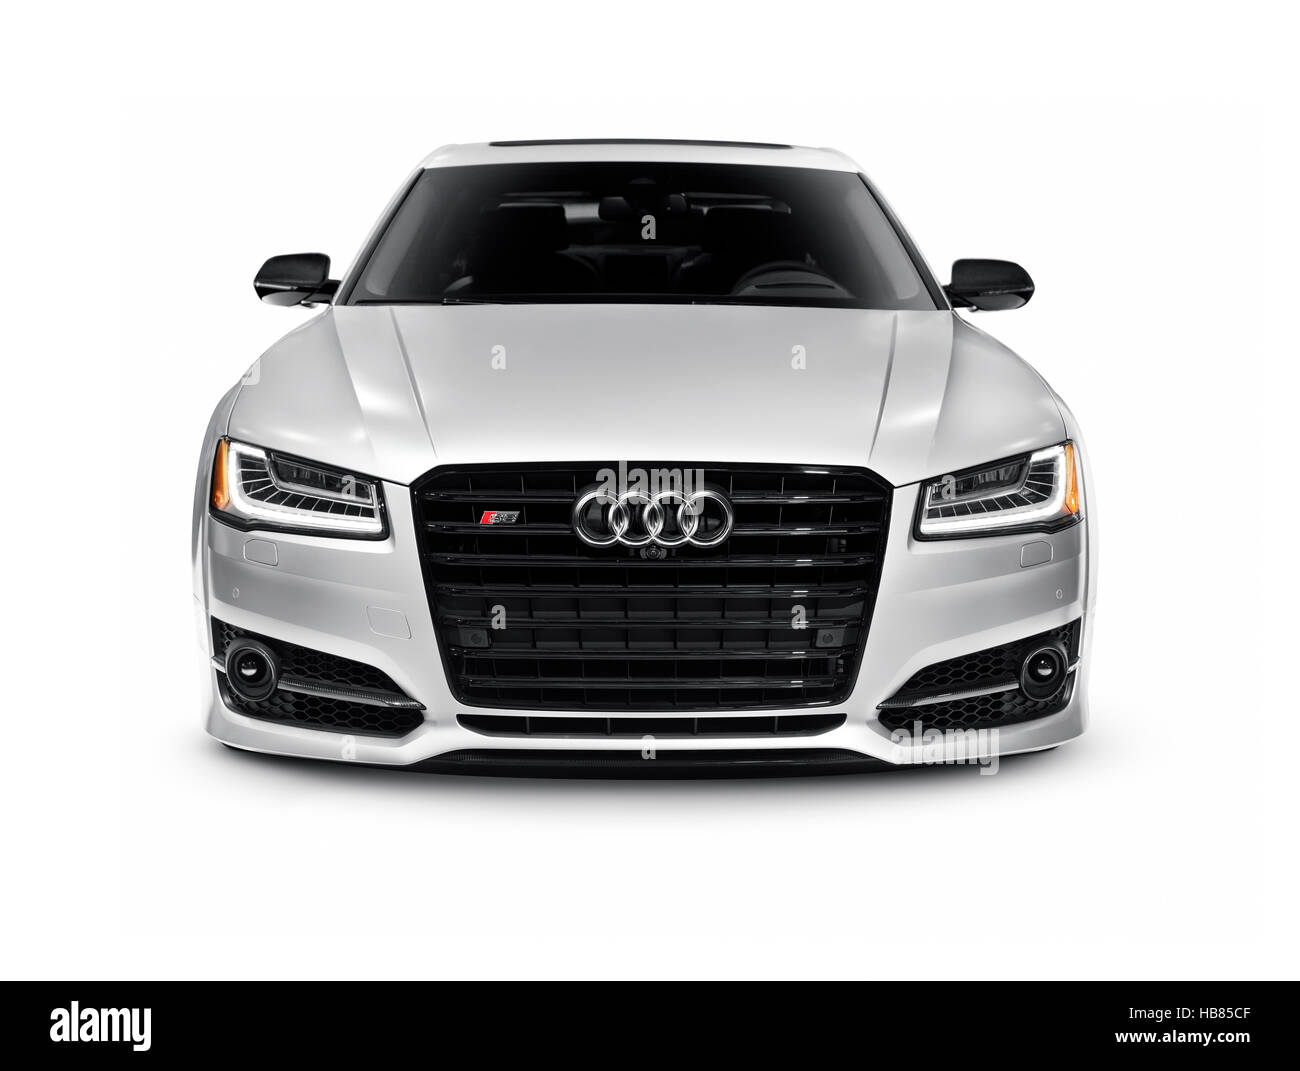 Silver 2016 Audi S8 Plus Sedan Luxury Car Front View Isolated On